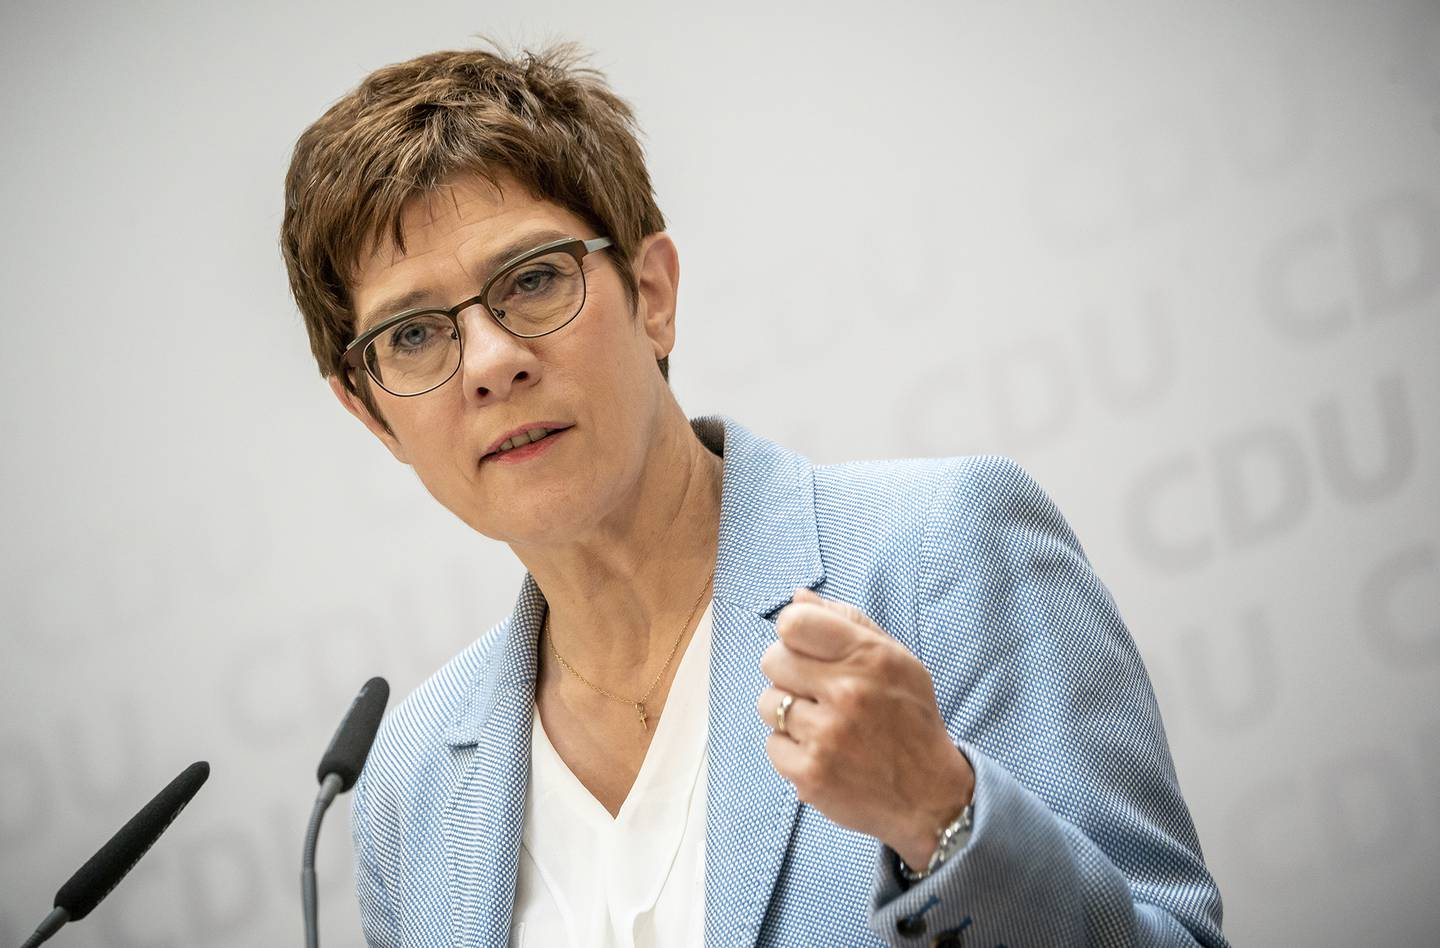 Annegret Kramp-Karrenbauer, Christian Democratic Union, CDU, party chairwoman and German minister of defense, speaks at a news conference  following a CDU leaders meeting at the headquarters in Berlin